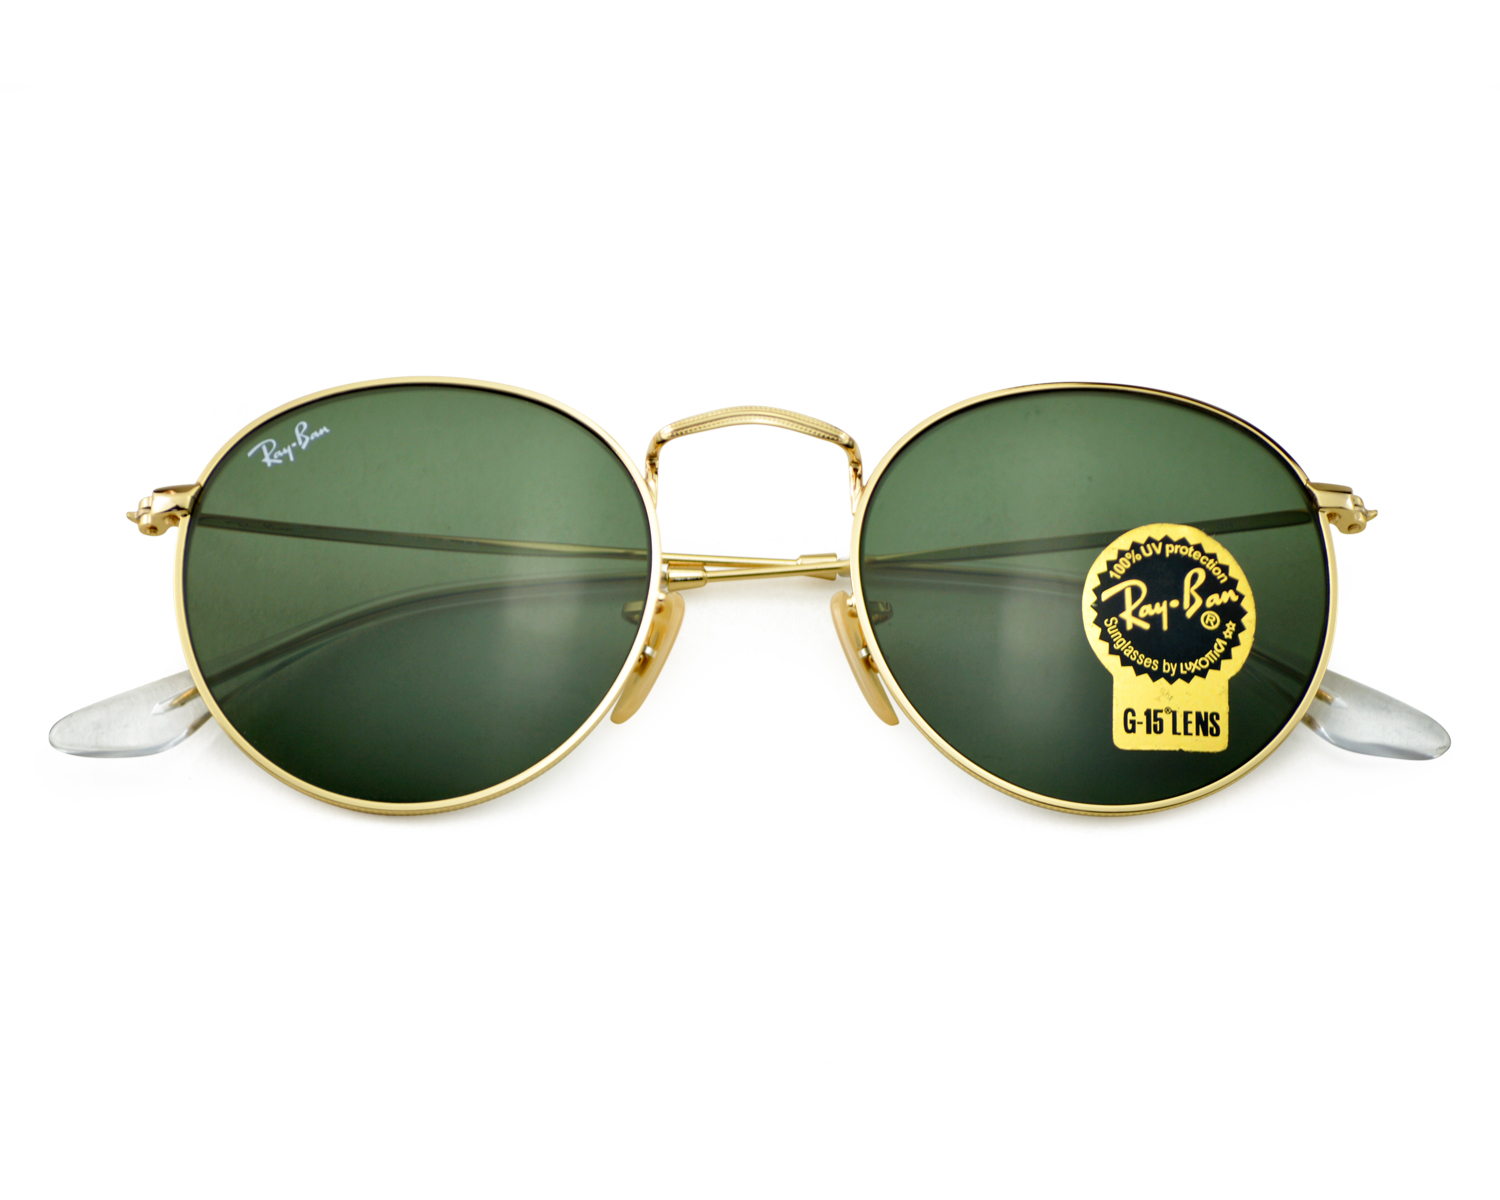 4fed2a5430 Ray-Ban RB3447 Round Metal 001 Gold Frame  Green Classic G-15 Lens  Sunglasses 50mm